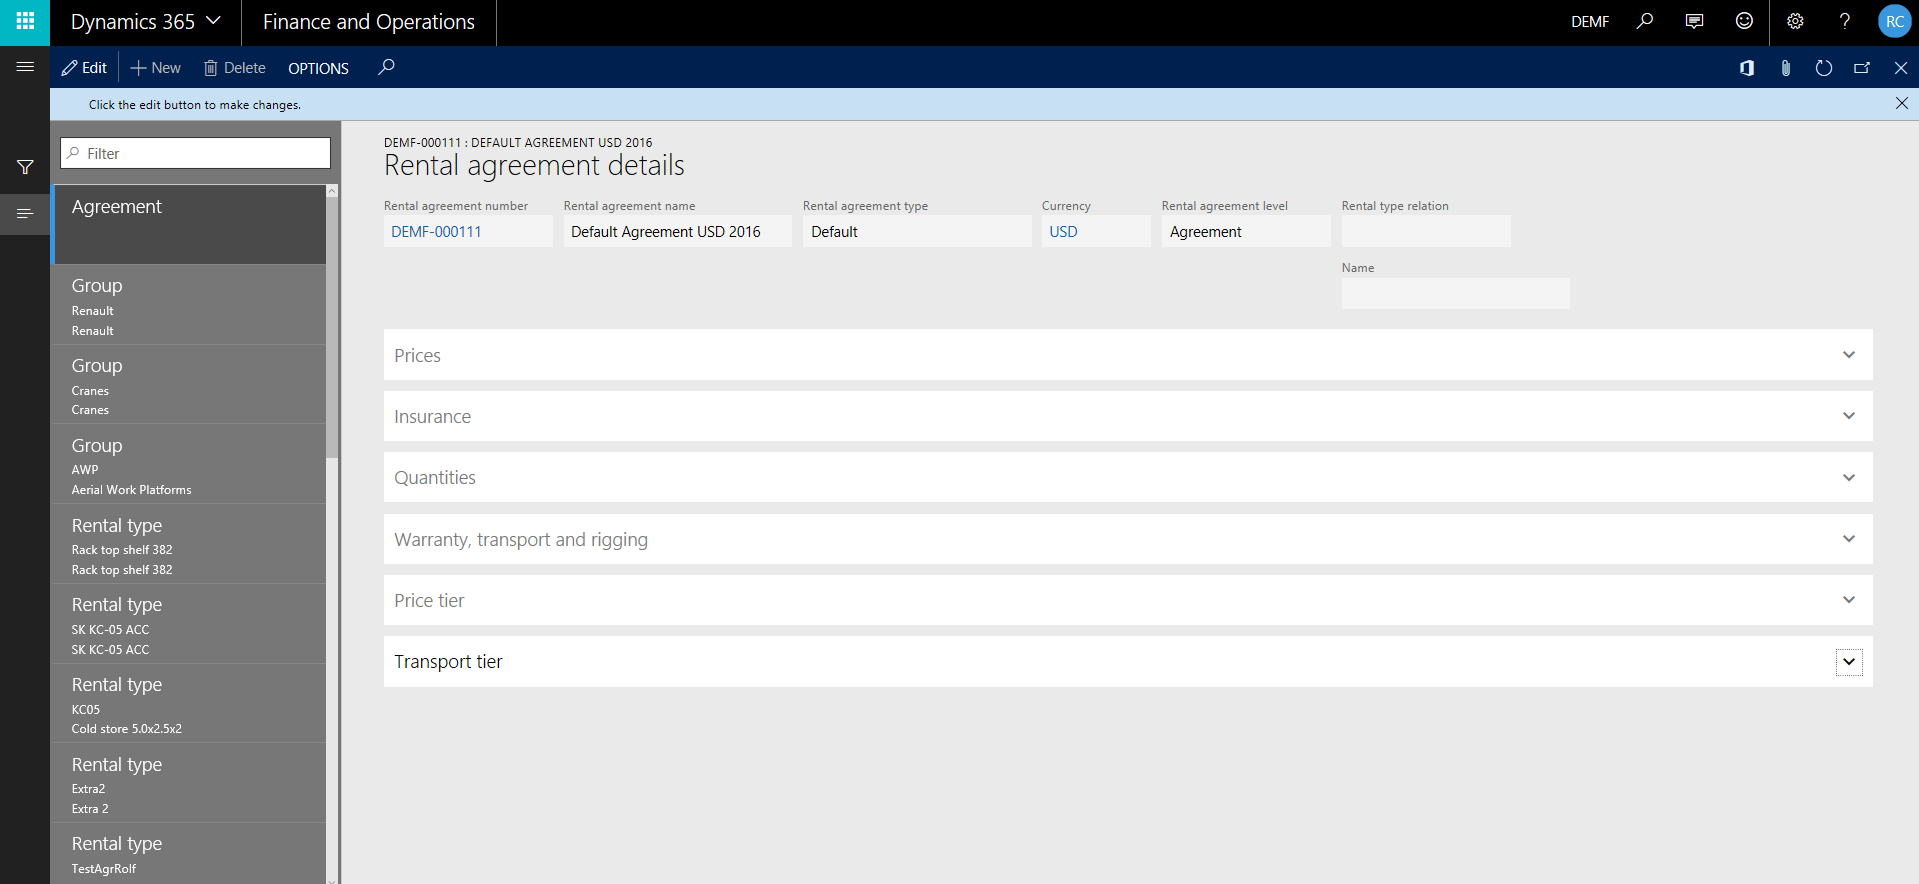 Possibilities In A Rental Agreement Erp Software Blog